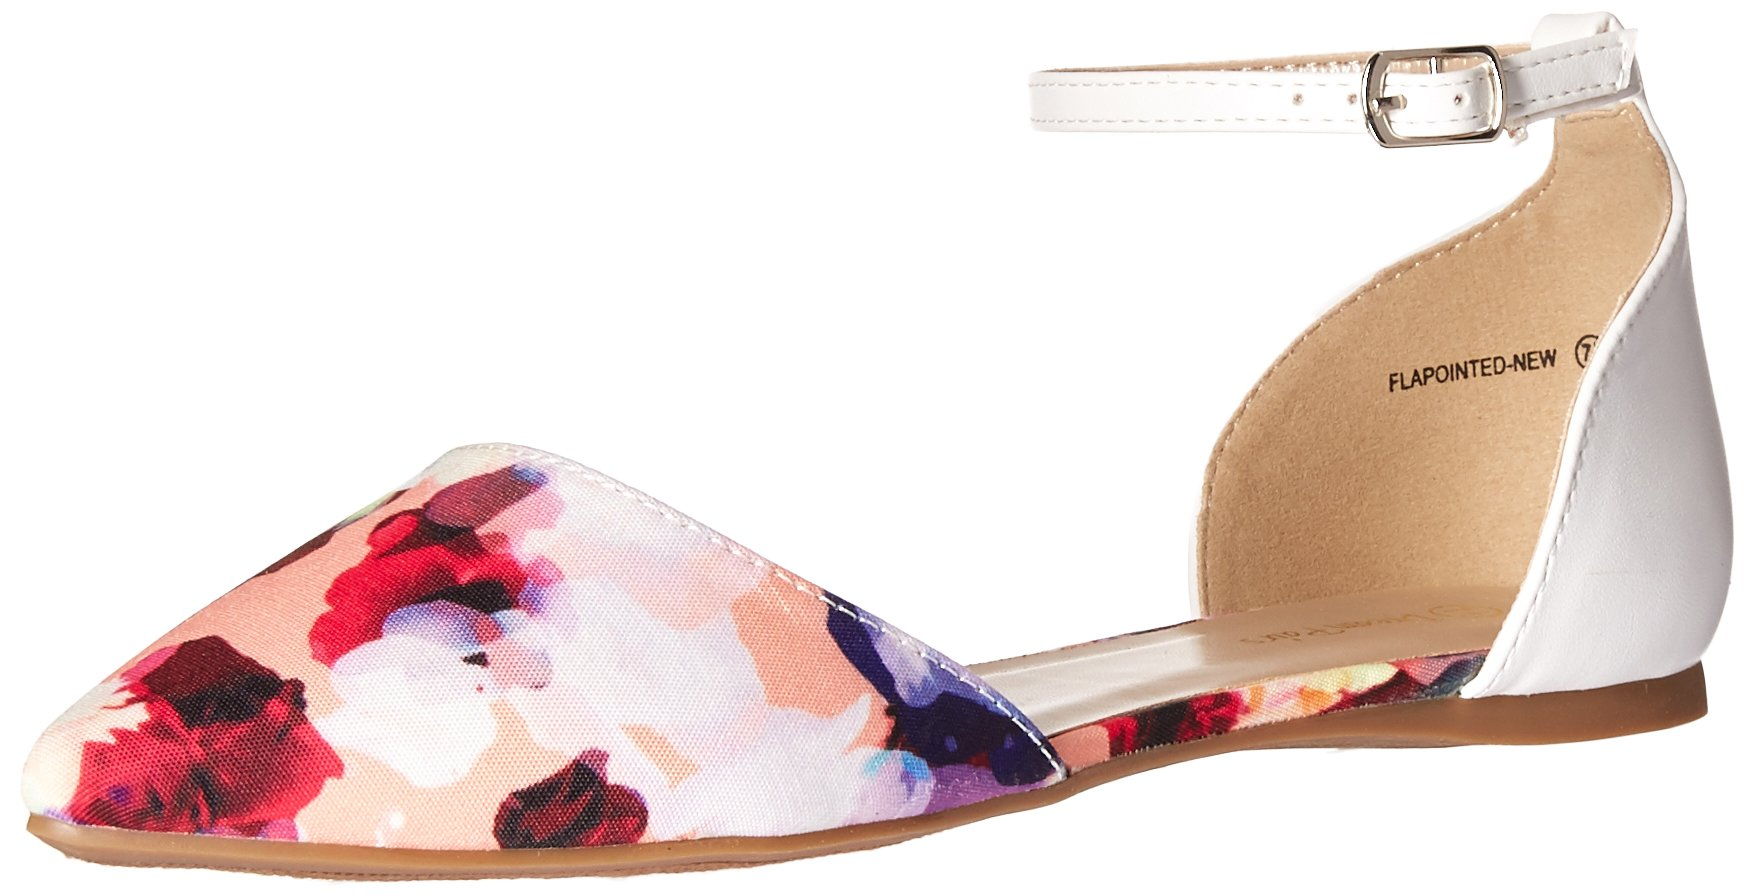 DREAM PAIRS Women's Flapointed-New Pump, Floral White, 8.5 M US